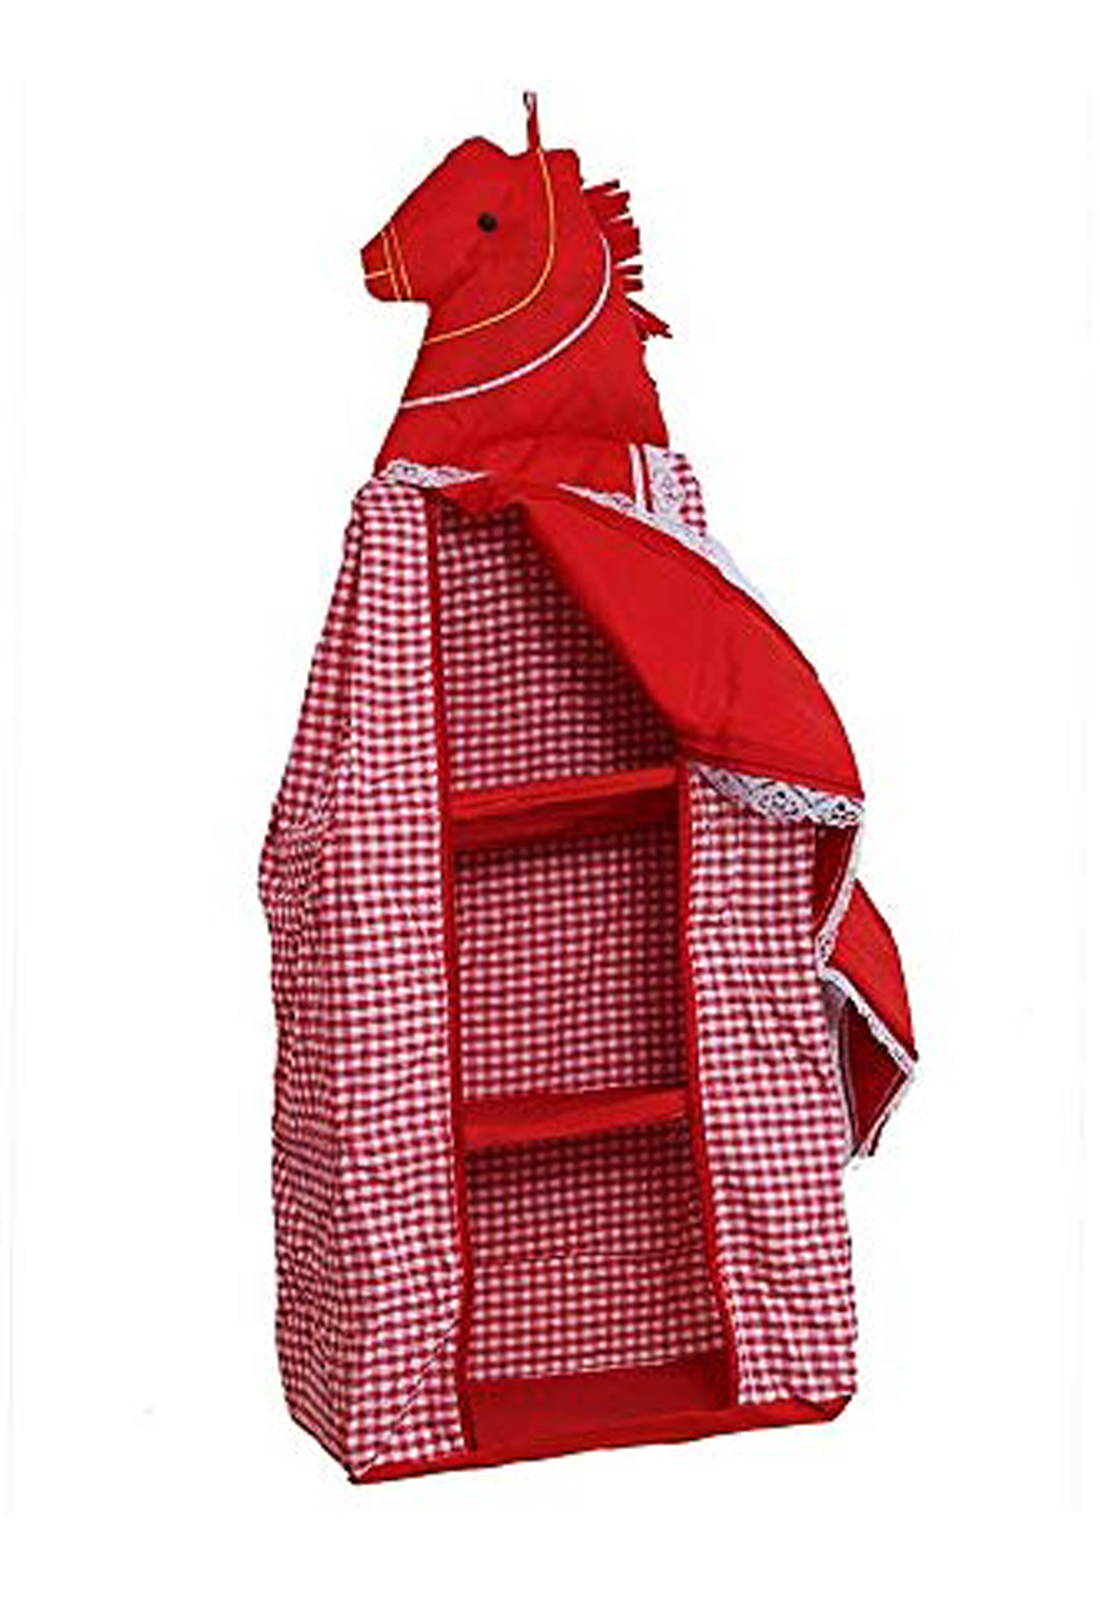 Kuber Industries Lining Horse Design Cotton Three Cabinet Hanging Baby almirah, Kids Wardrobe, Cloth Organizer, Folding almirah, Toy Box (Red) - CTKTC30999